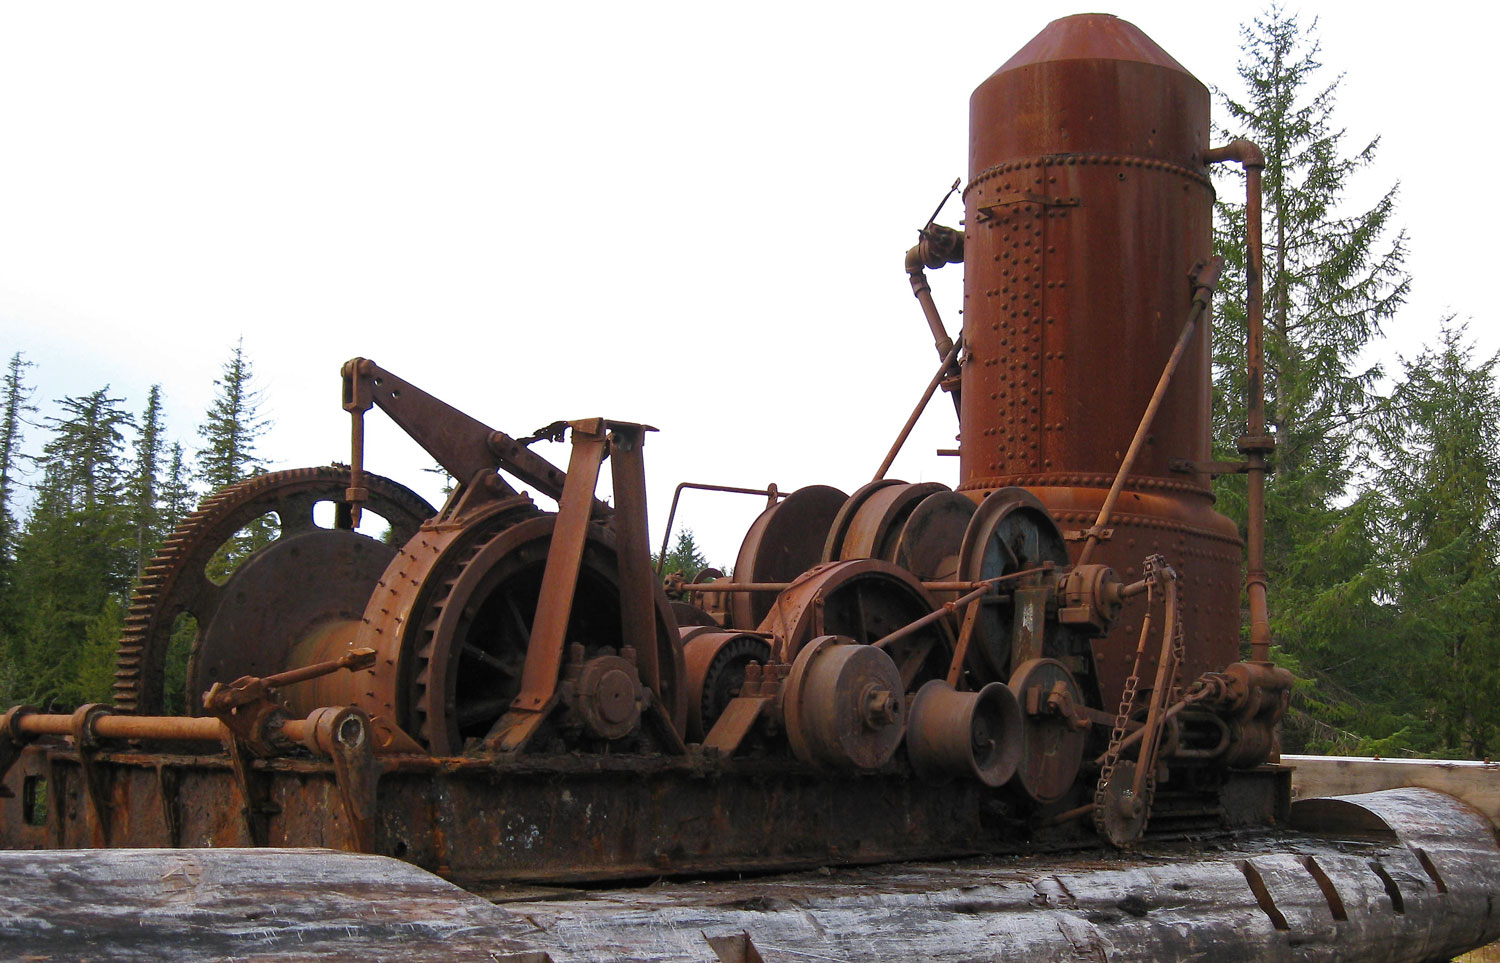 Naukait_Steam_Donkey_1596.jpg